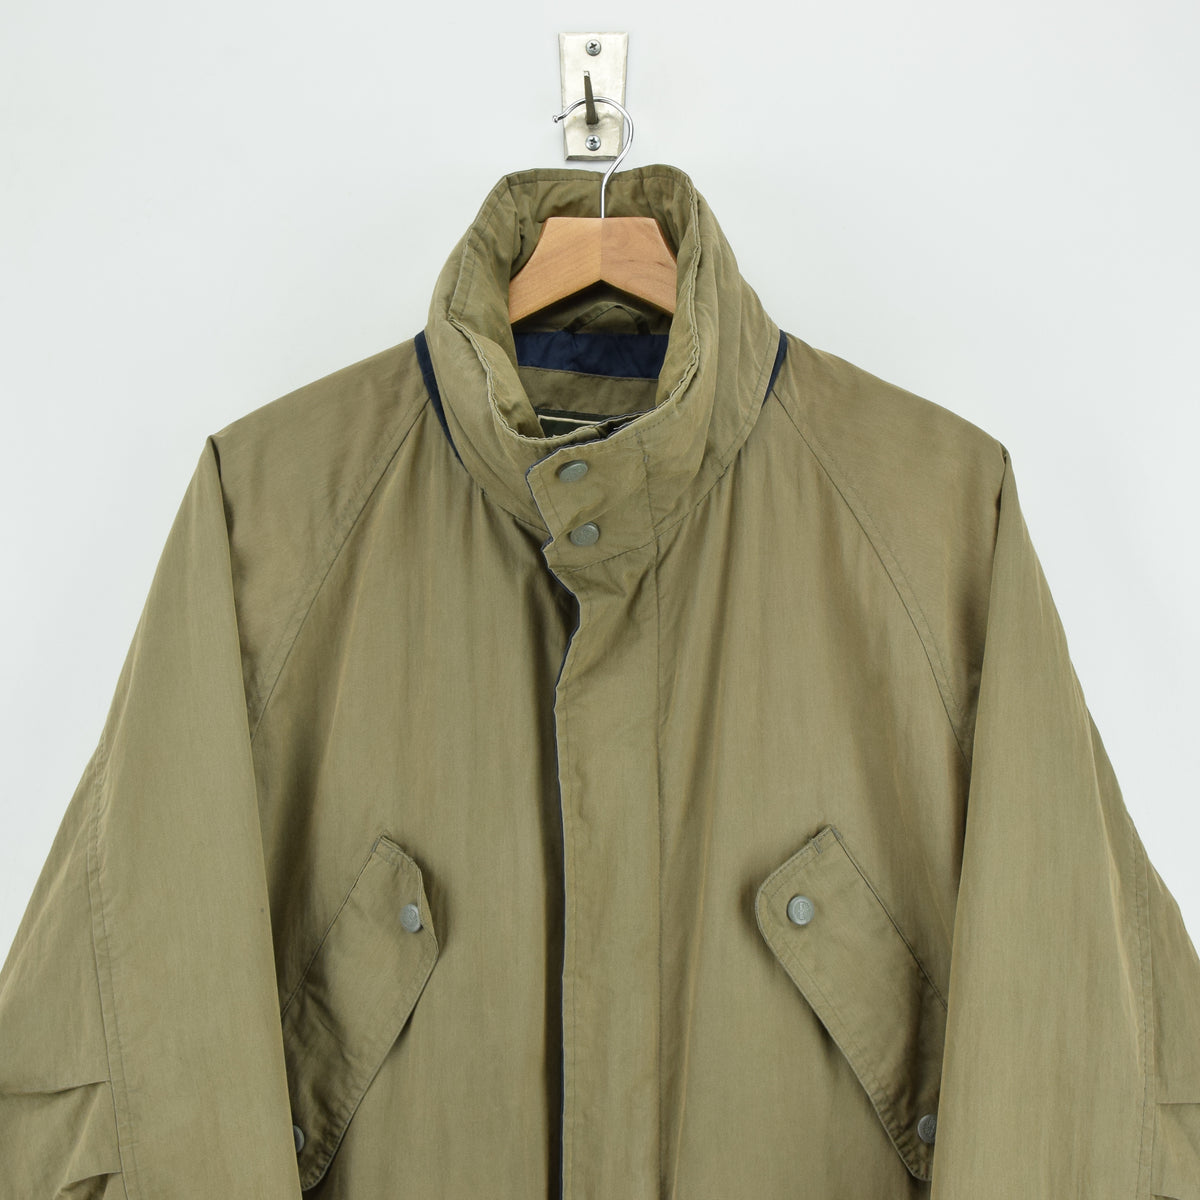 Vintage Timberland Olive Green Coat Jacket with Concealed Hood XS chest